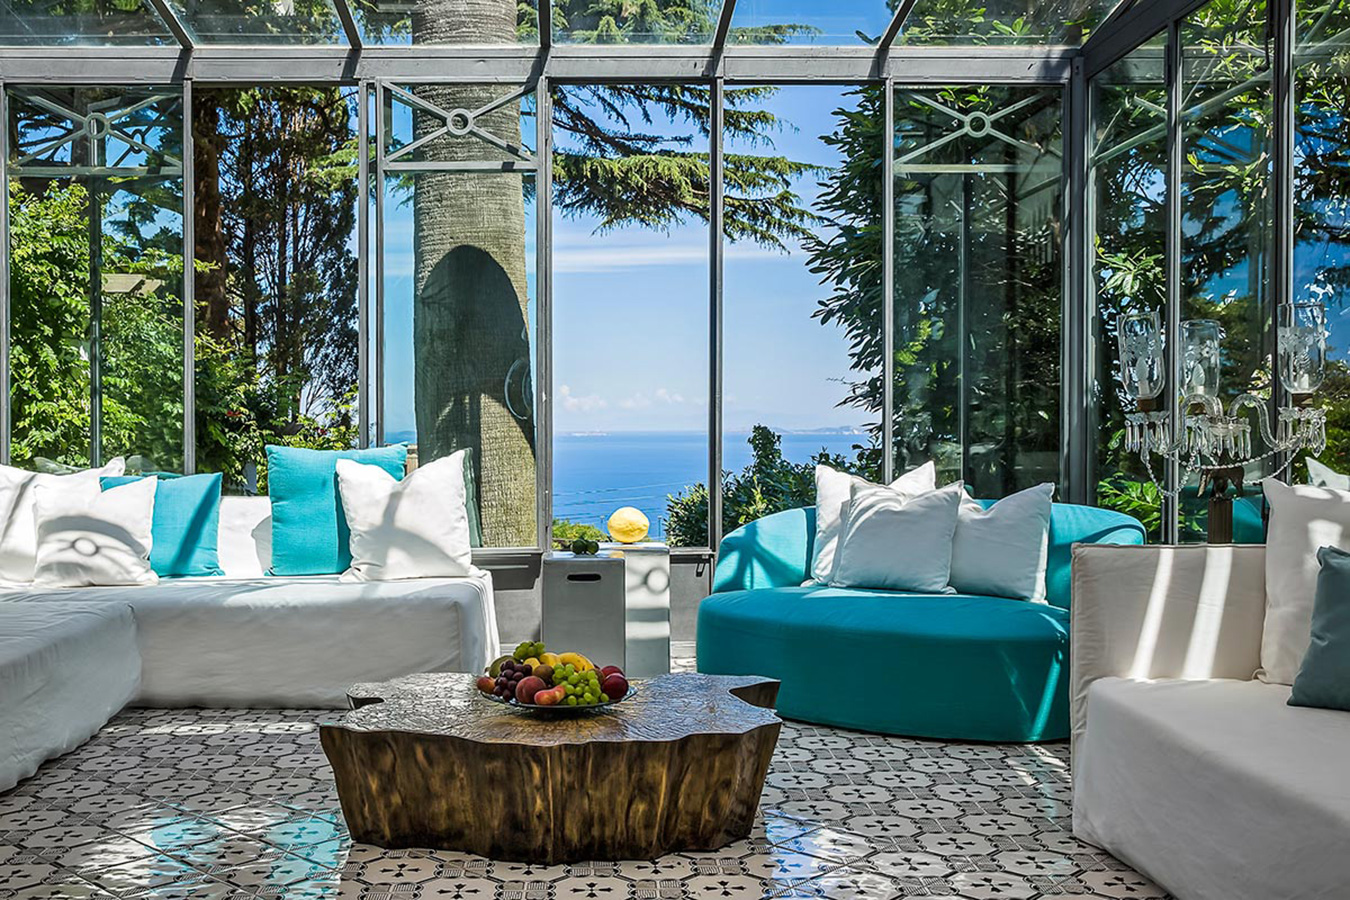 7 of the best amalfi coast villas to rent